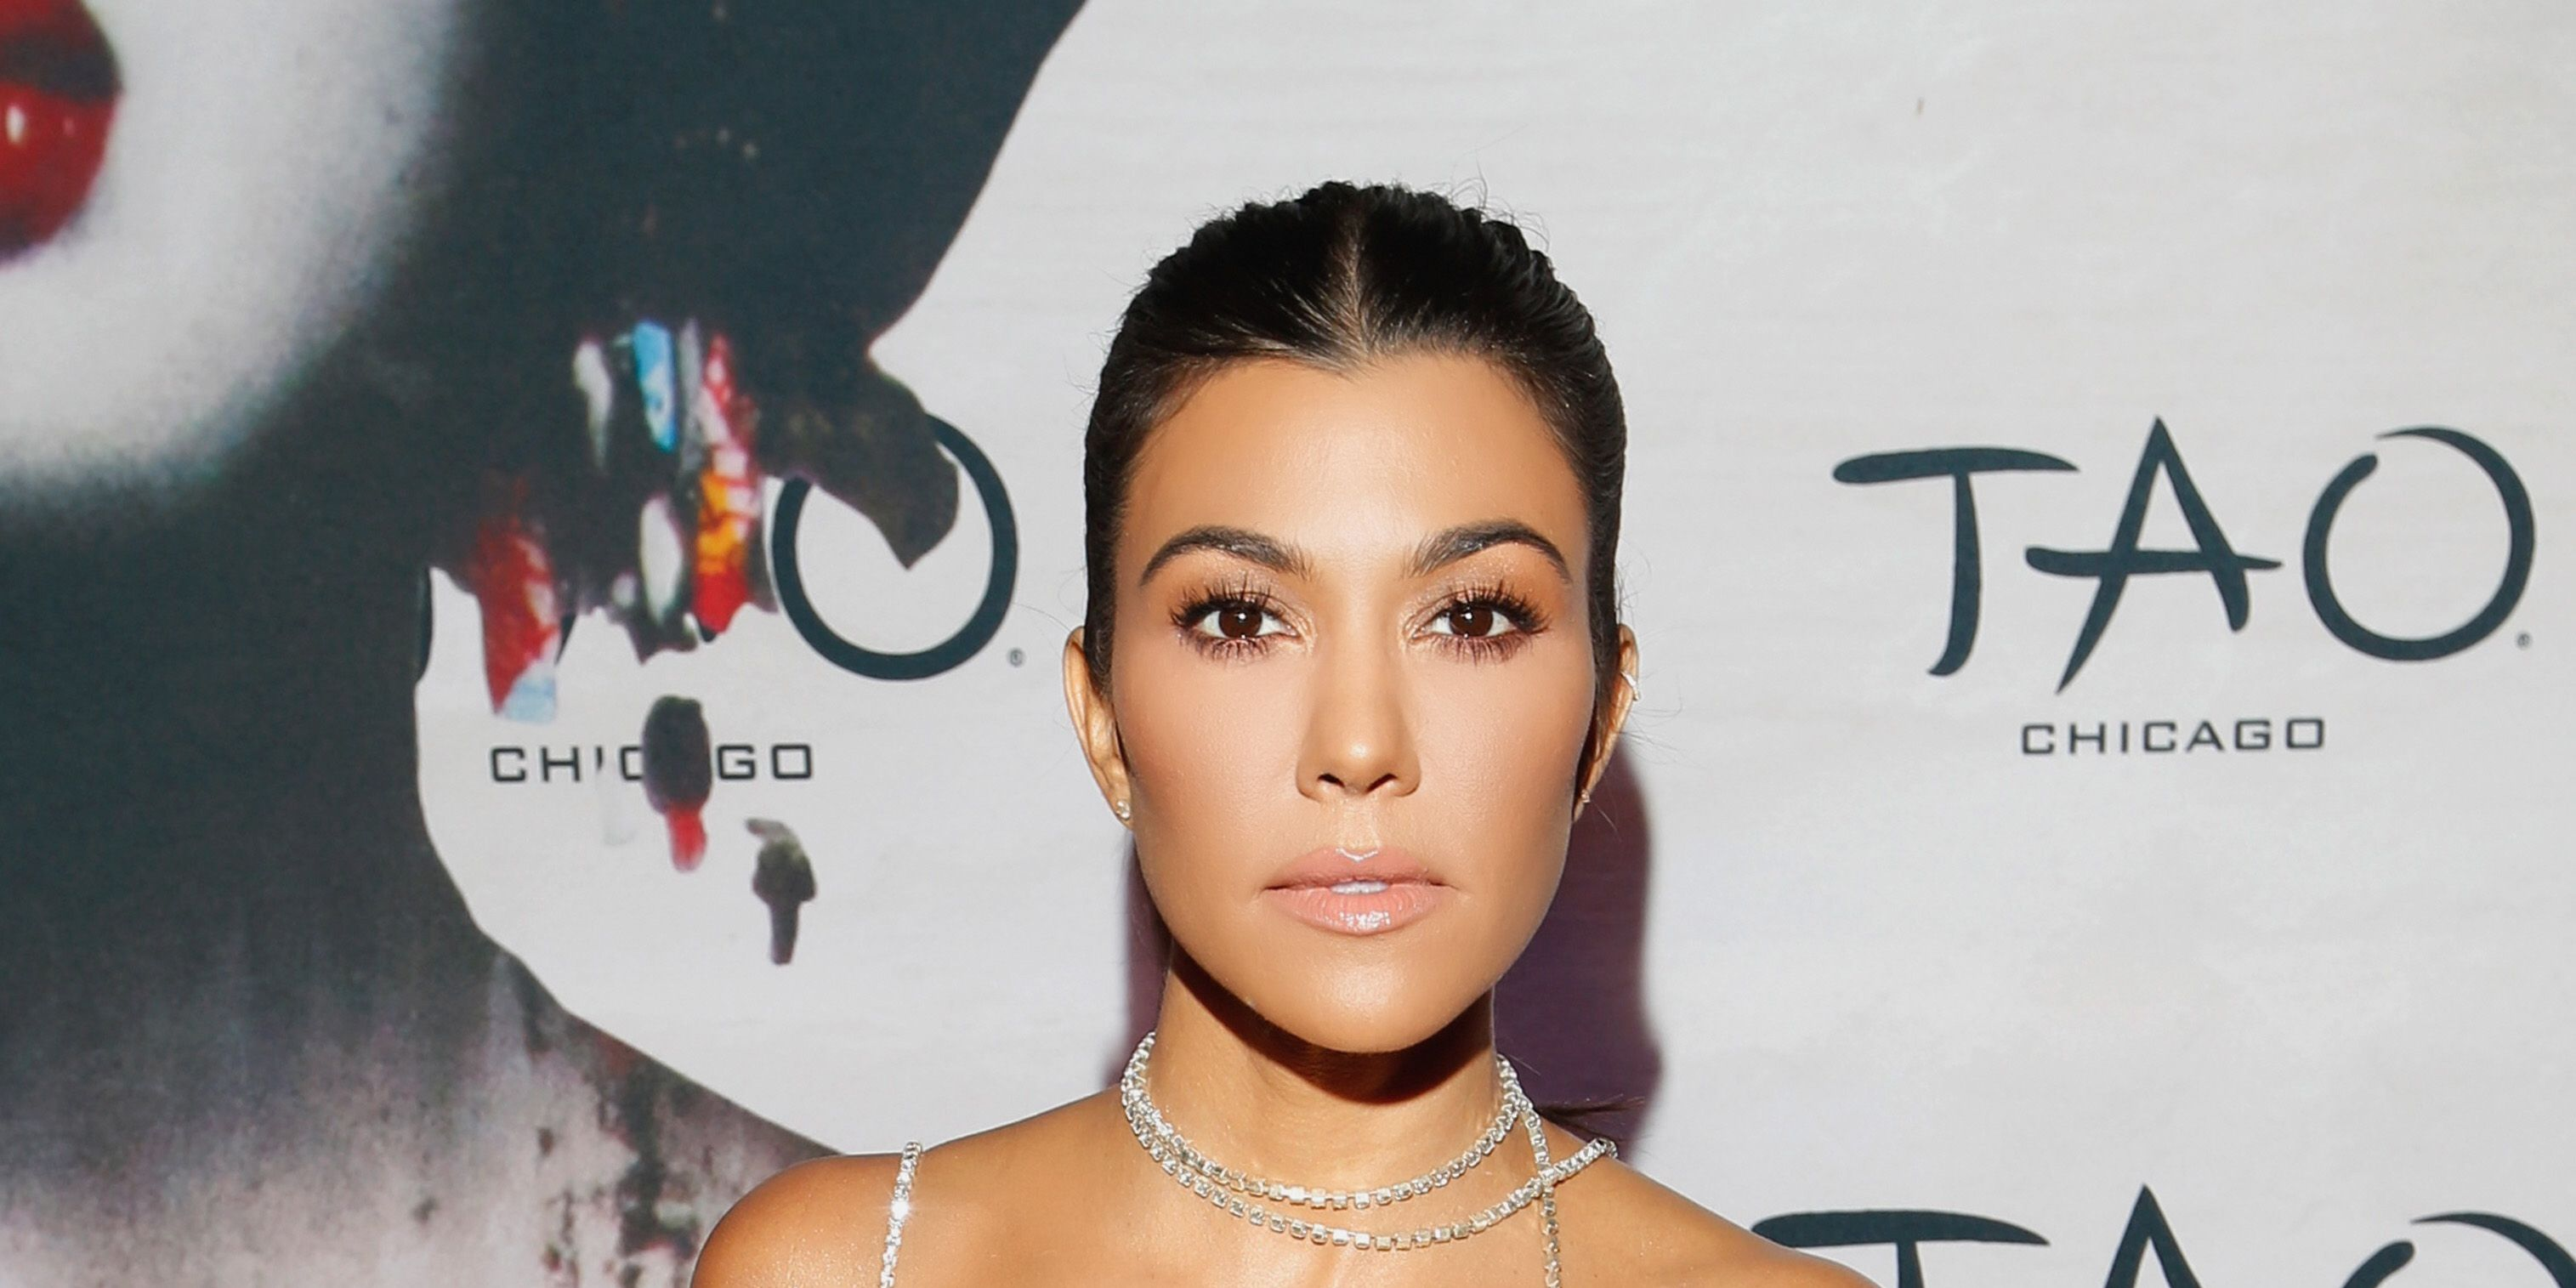 Kourtney Kardashian's date looks A LOT like her ex Younes Bendjima